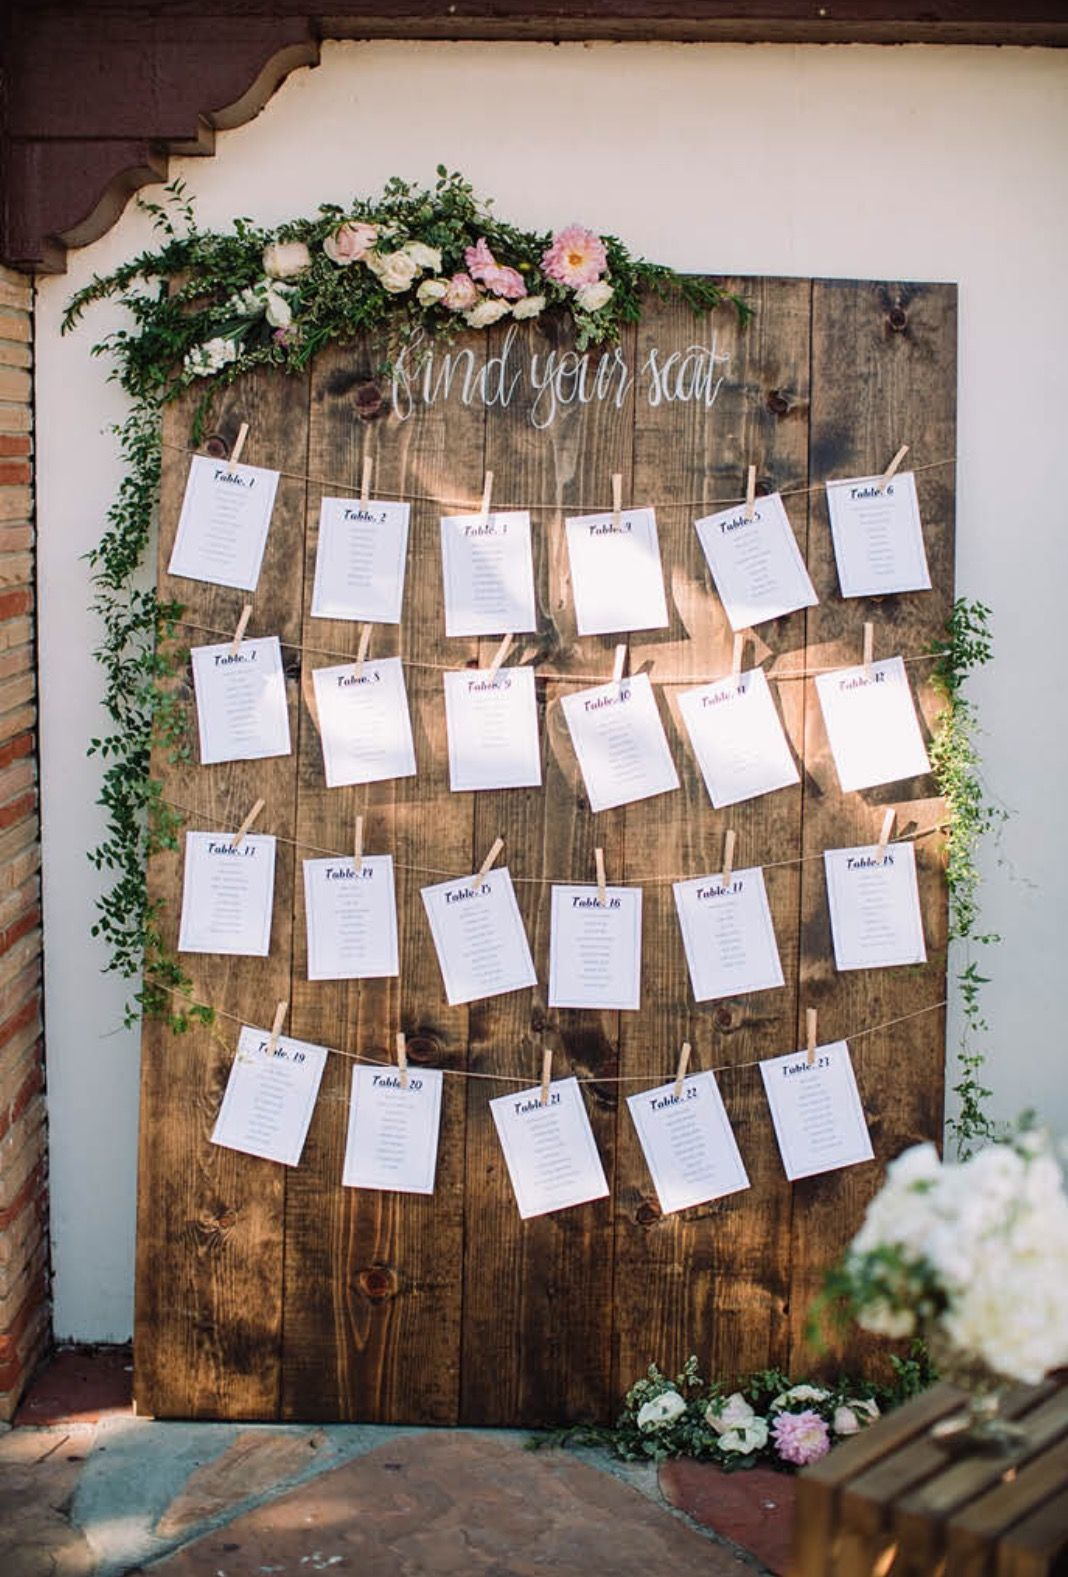 Miscellaneavintagerentals wedding seating chart ideas large farm wood find your seat for muckenthaler also best charts images rh pinterest